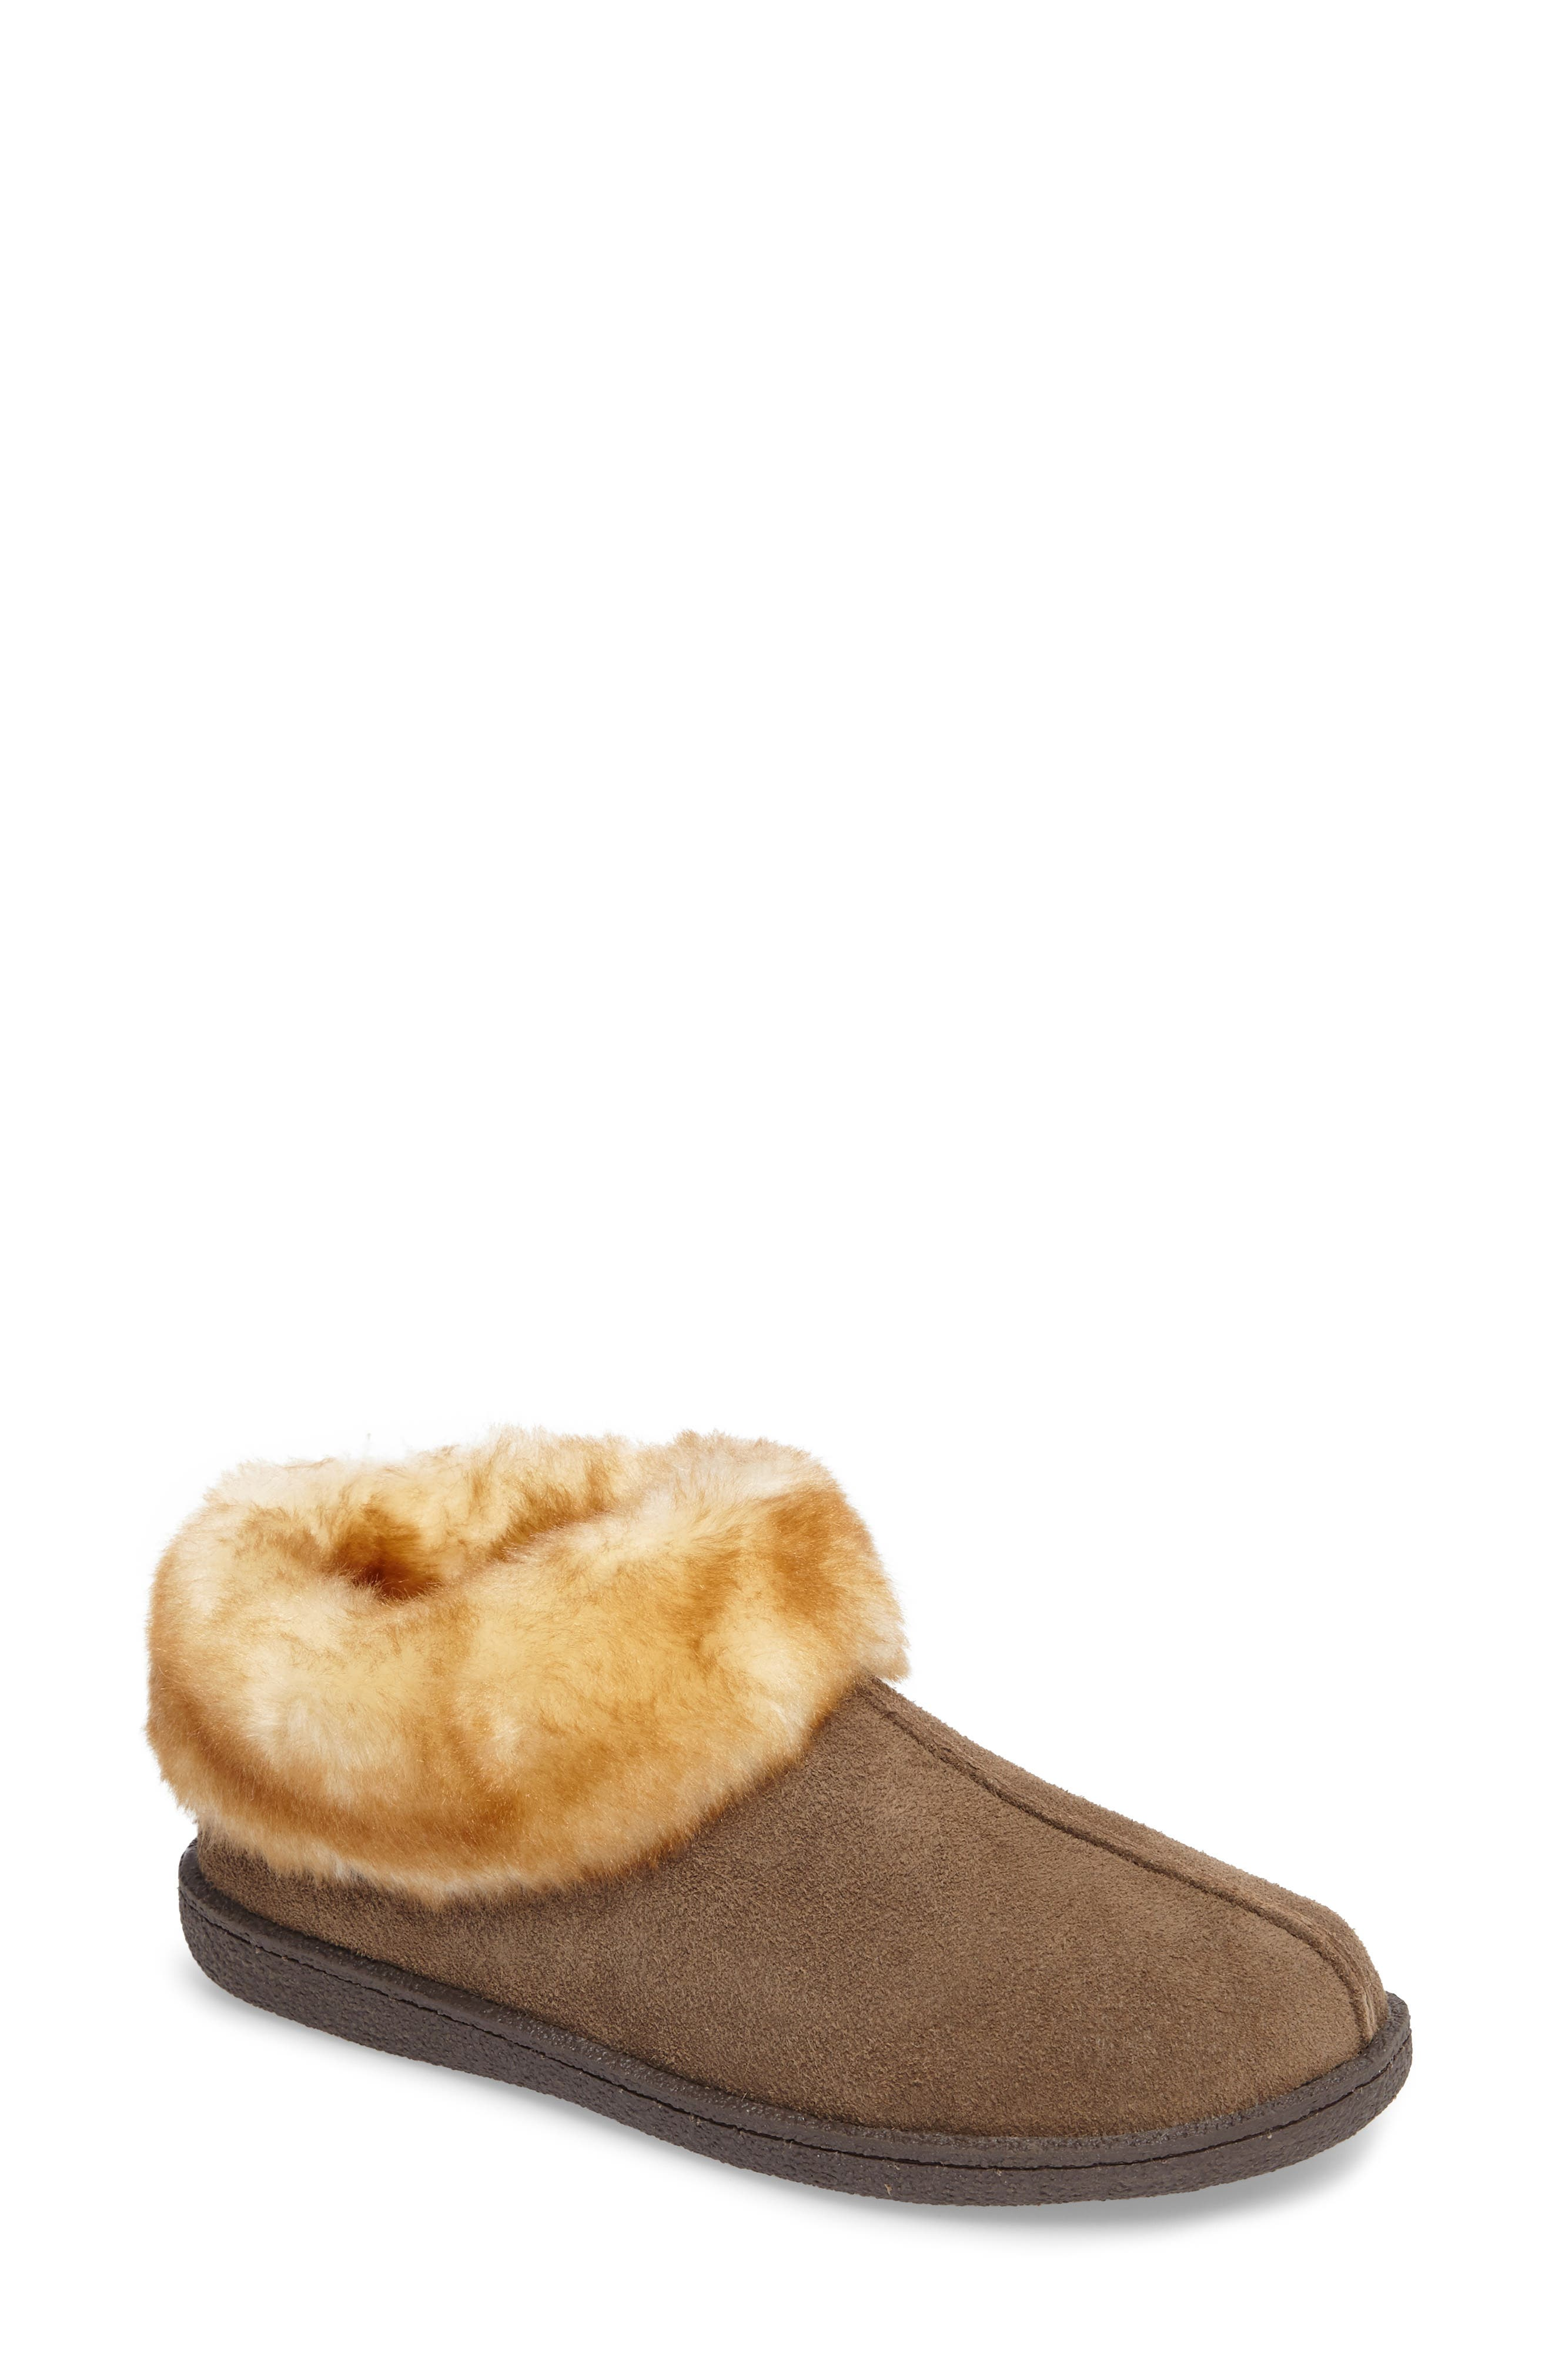 Autumn Ridge II Faux Fur Slipper Bootie,                             Main thumbnail 2, color,